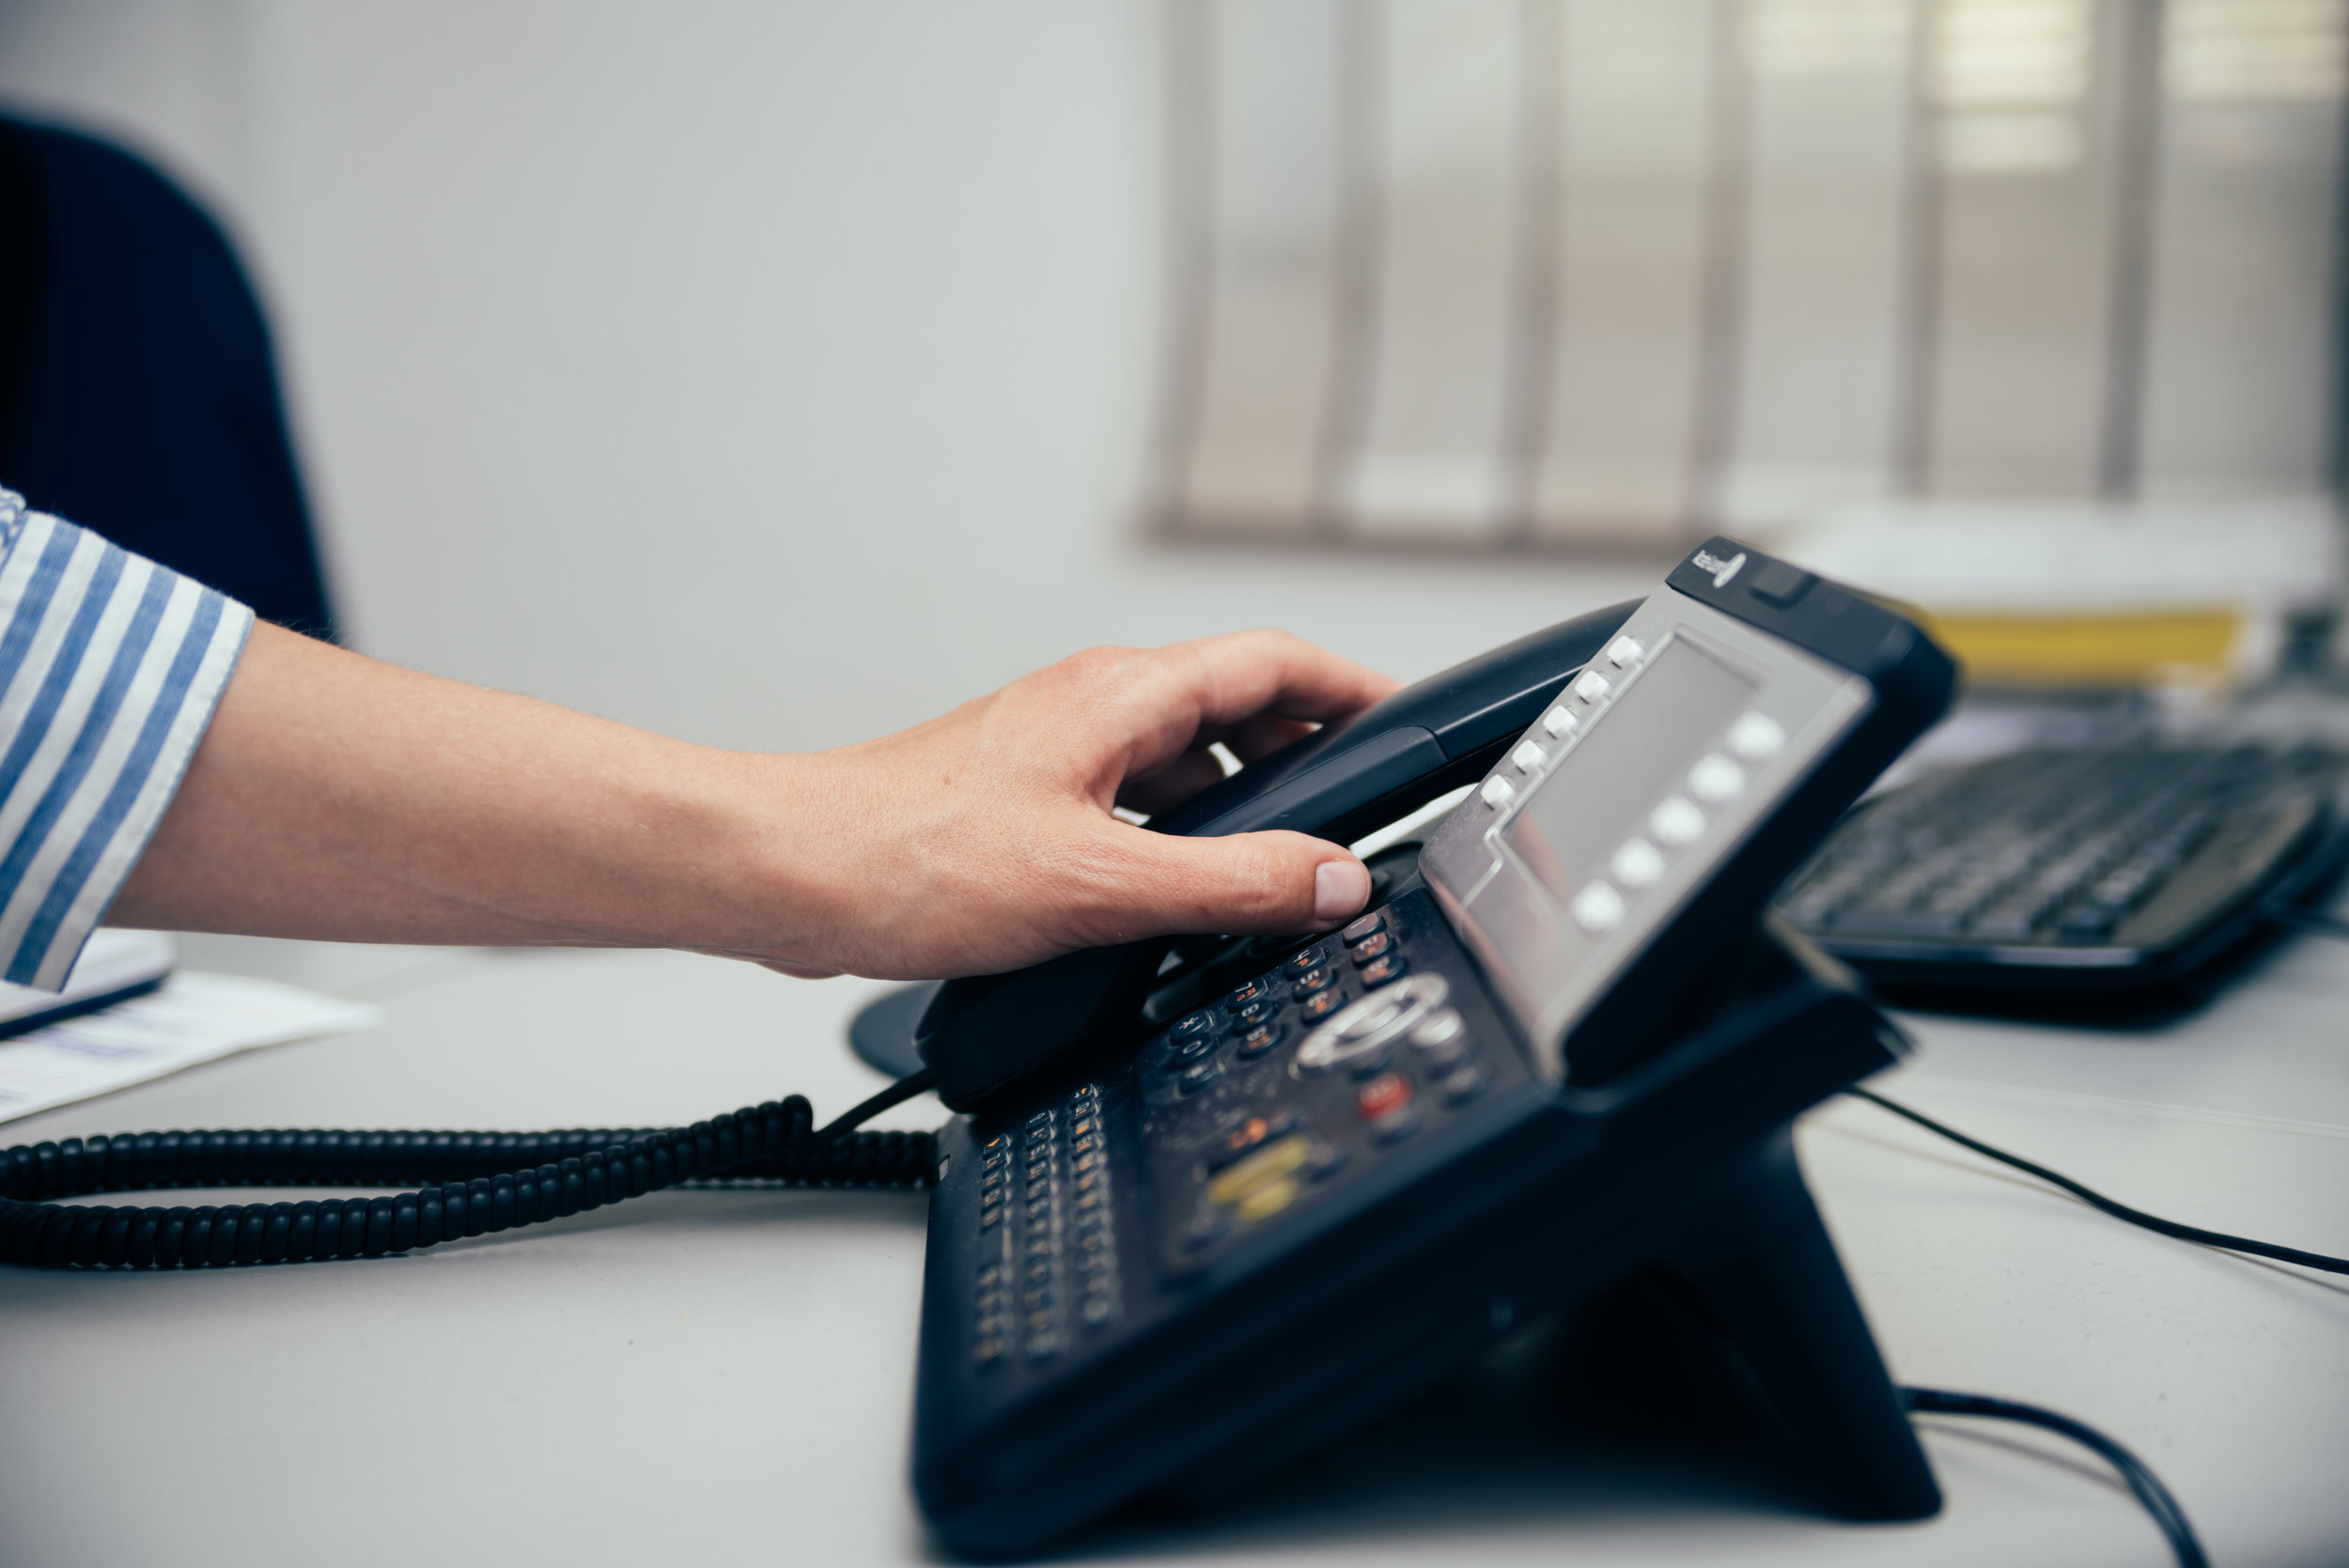 A receptionist picking up the telephone to answer patients' calls